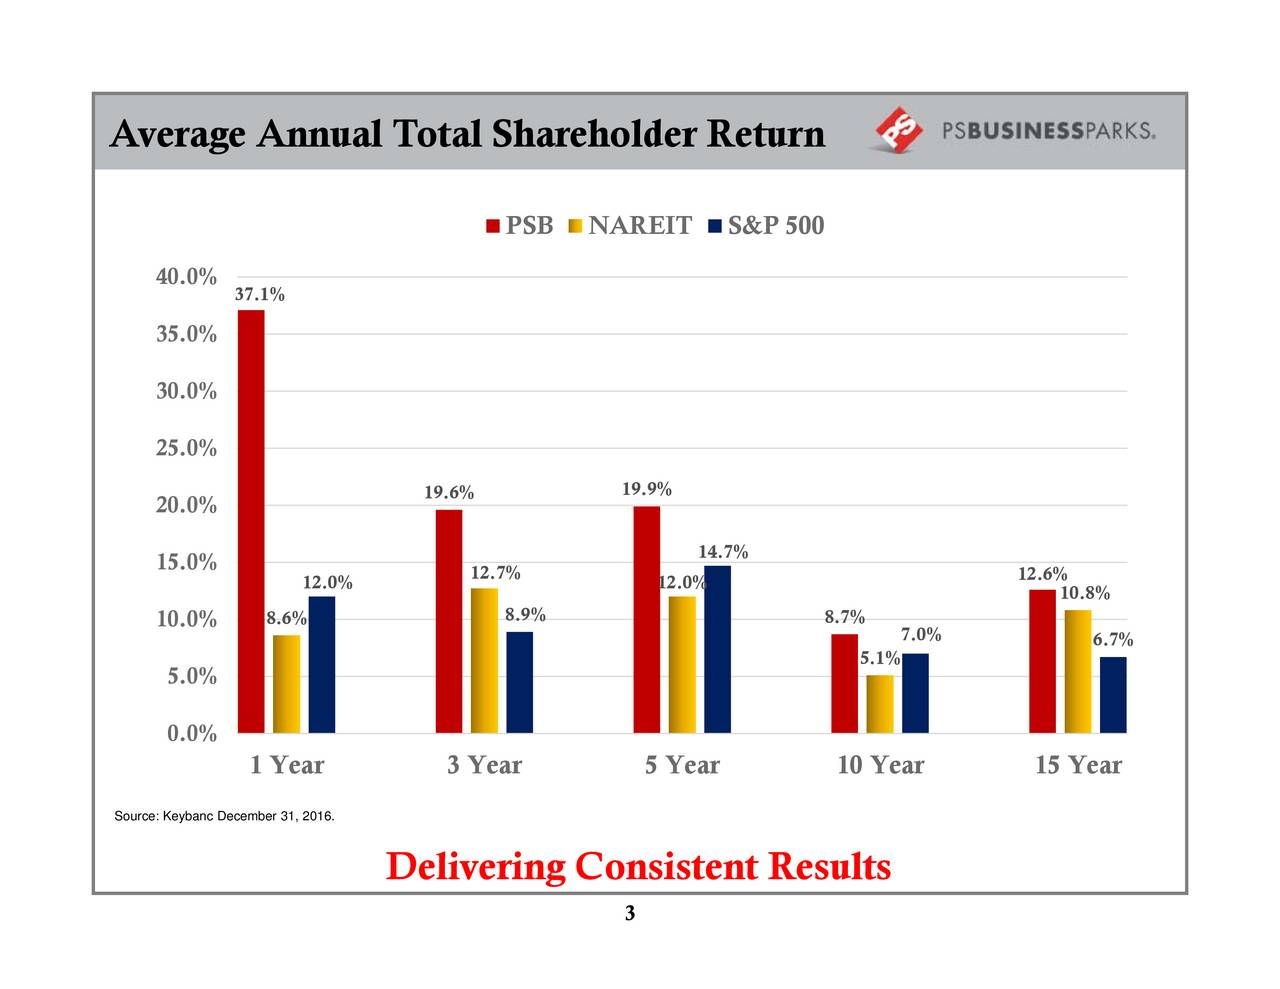 10.8% 12.6% 7.0% 5.1% 8.7% S&P 500 14.7% 12.0% 19.9% 3 NAREIT PSB 8.9% 12.7% 19.6% Delivering Consistent Results 12.0% 8.6% 1 Year 3 Year 37.1% 5.0% 0.0% 40.0%35.0%30.0%25.0%20.0%15.0%10.0% Average Annual Total Shareholder Return Source: Keybanc December 31, 2016.